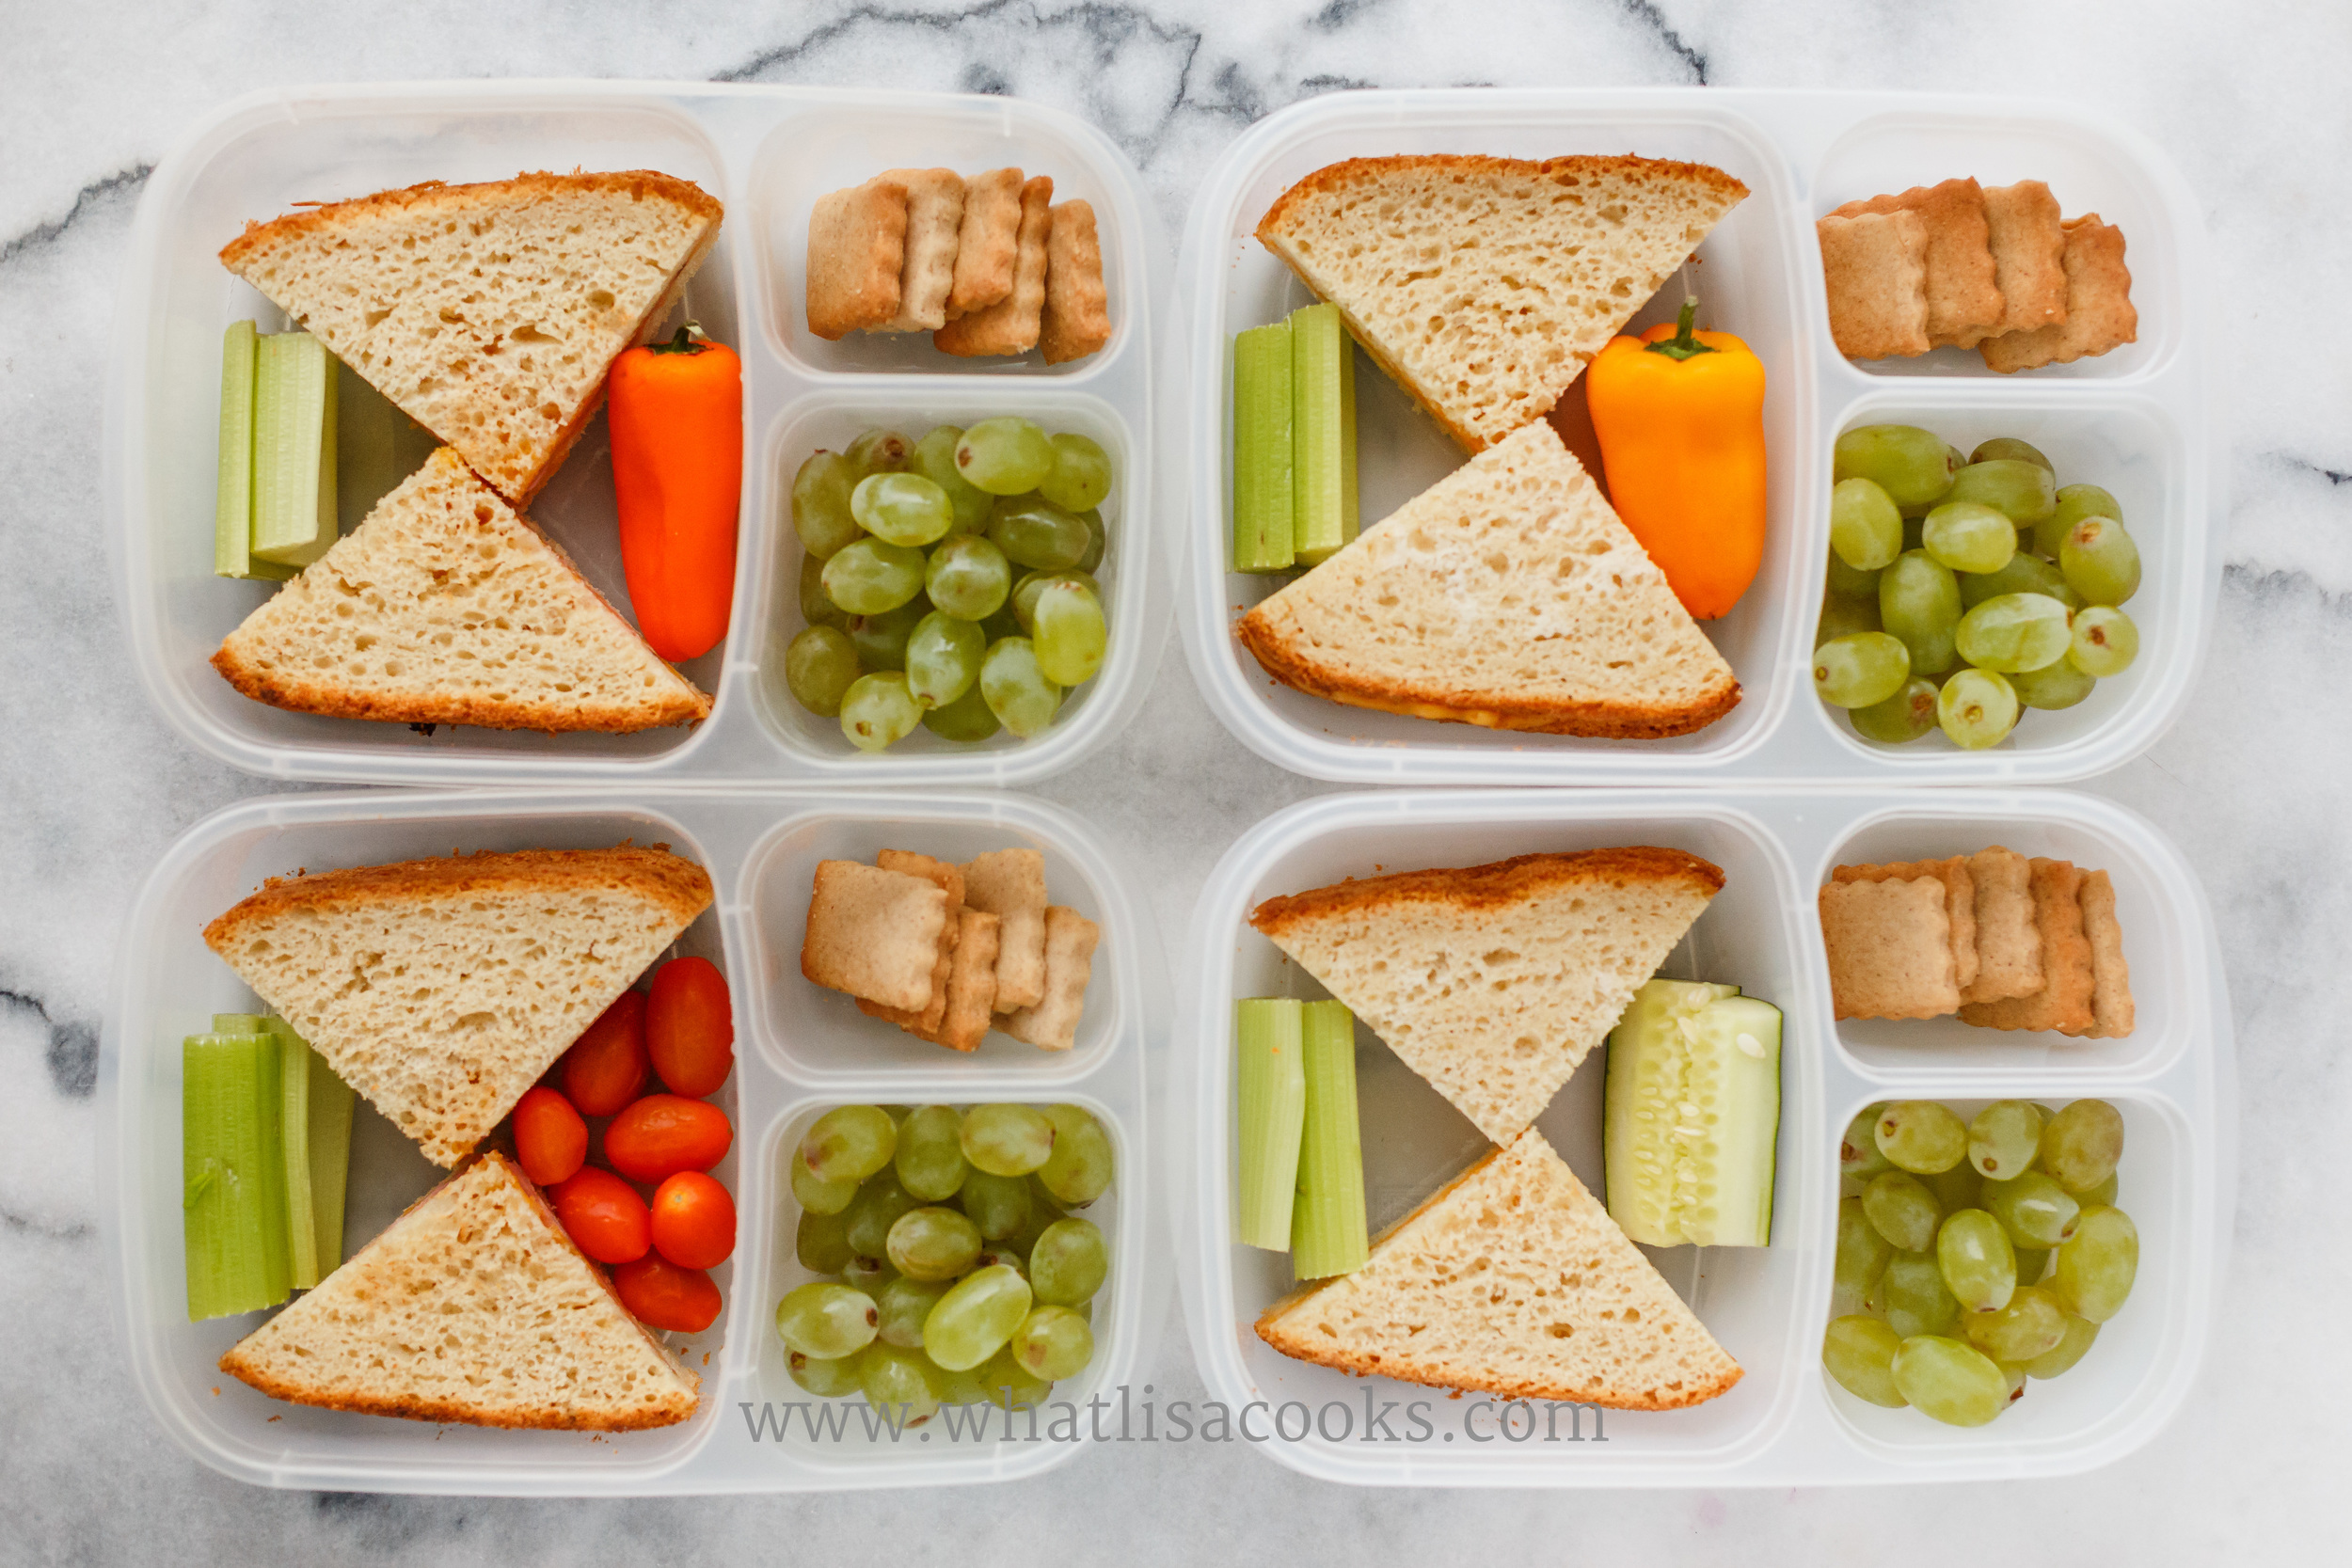 Toasted cheese sandwiches on homemade bread, veggies, grapes, and sugar cookies.  Packed in  EasyLunchboxes .